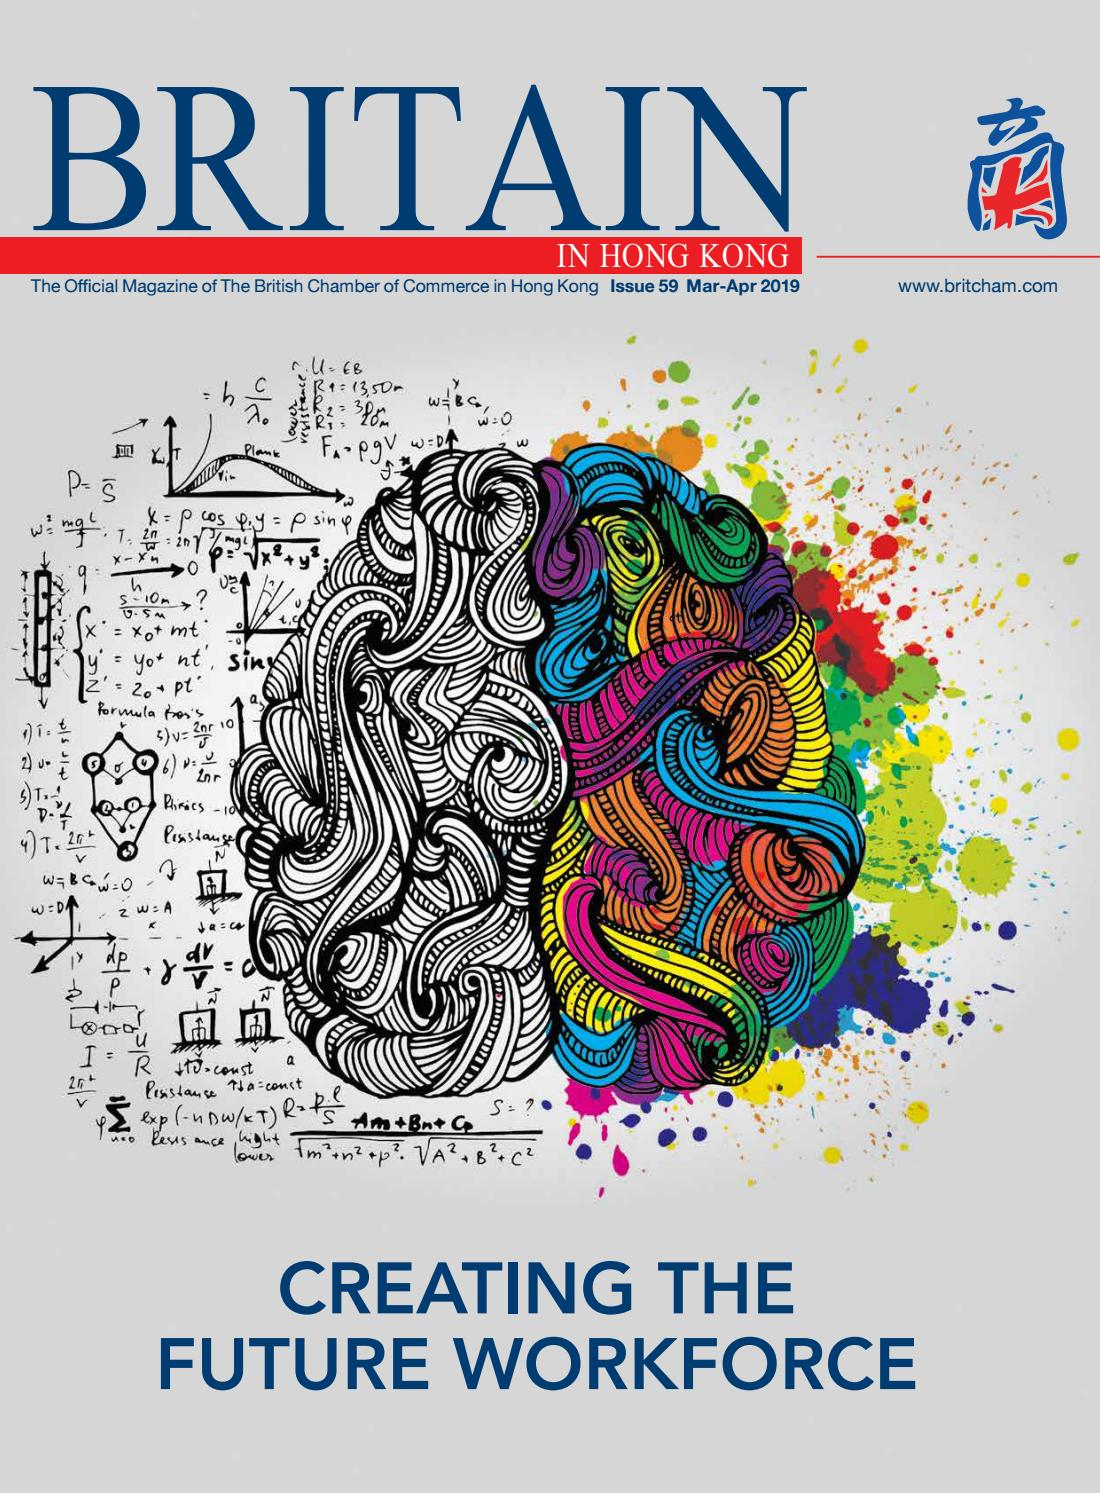 Britain in Hong Kong Mar-Apr 2019 by The British Chamber of Commerce - issuu